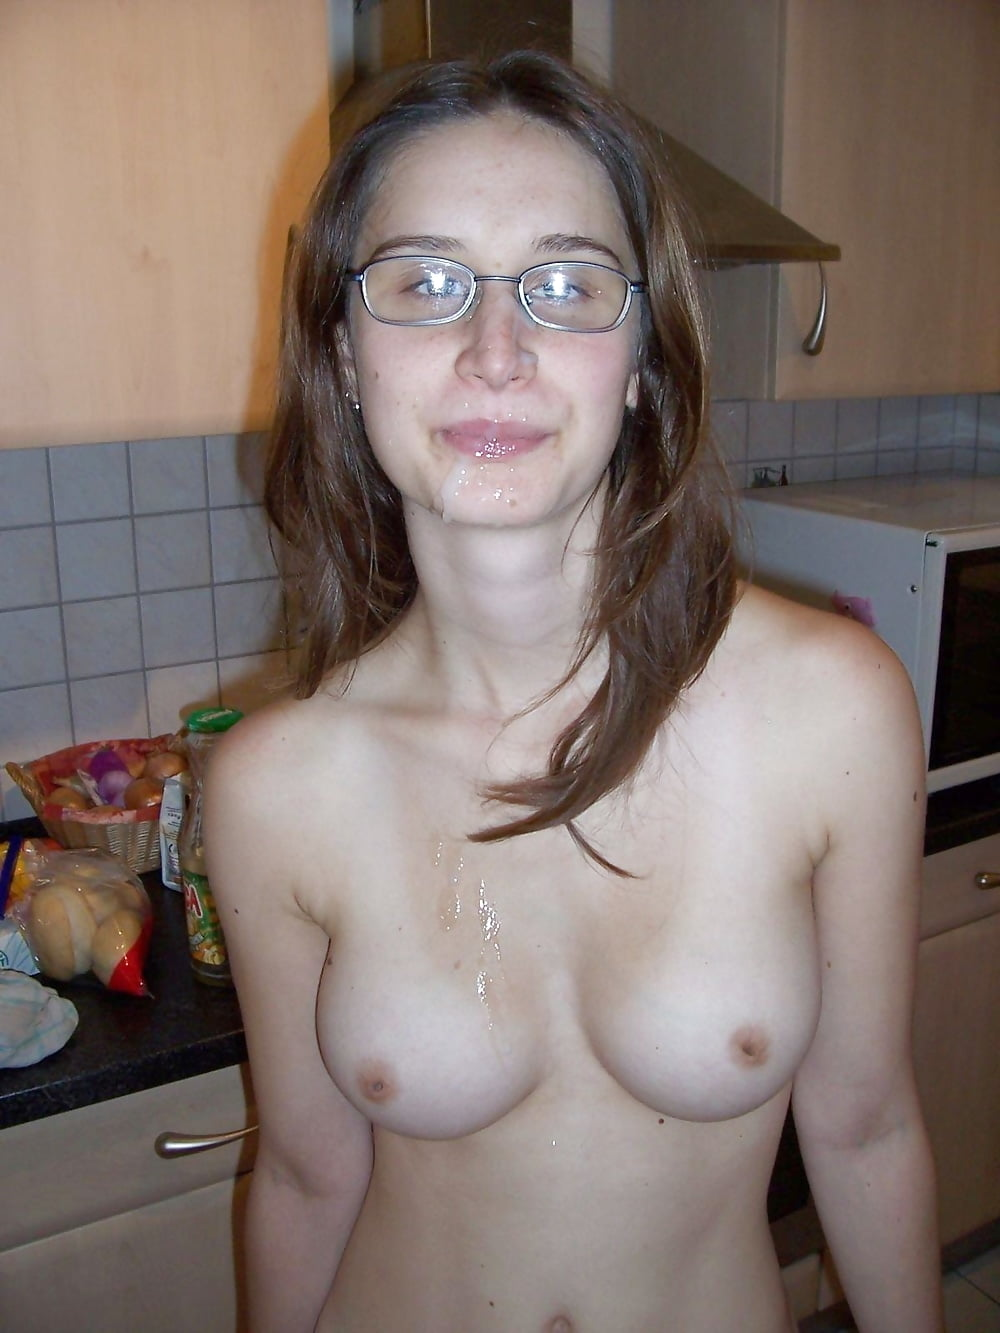 Ugly girl with glasses nude boost sperm production